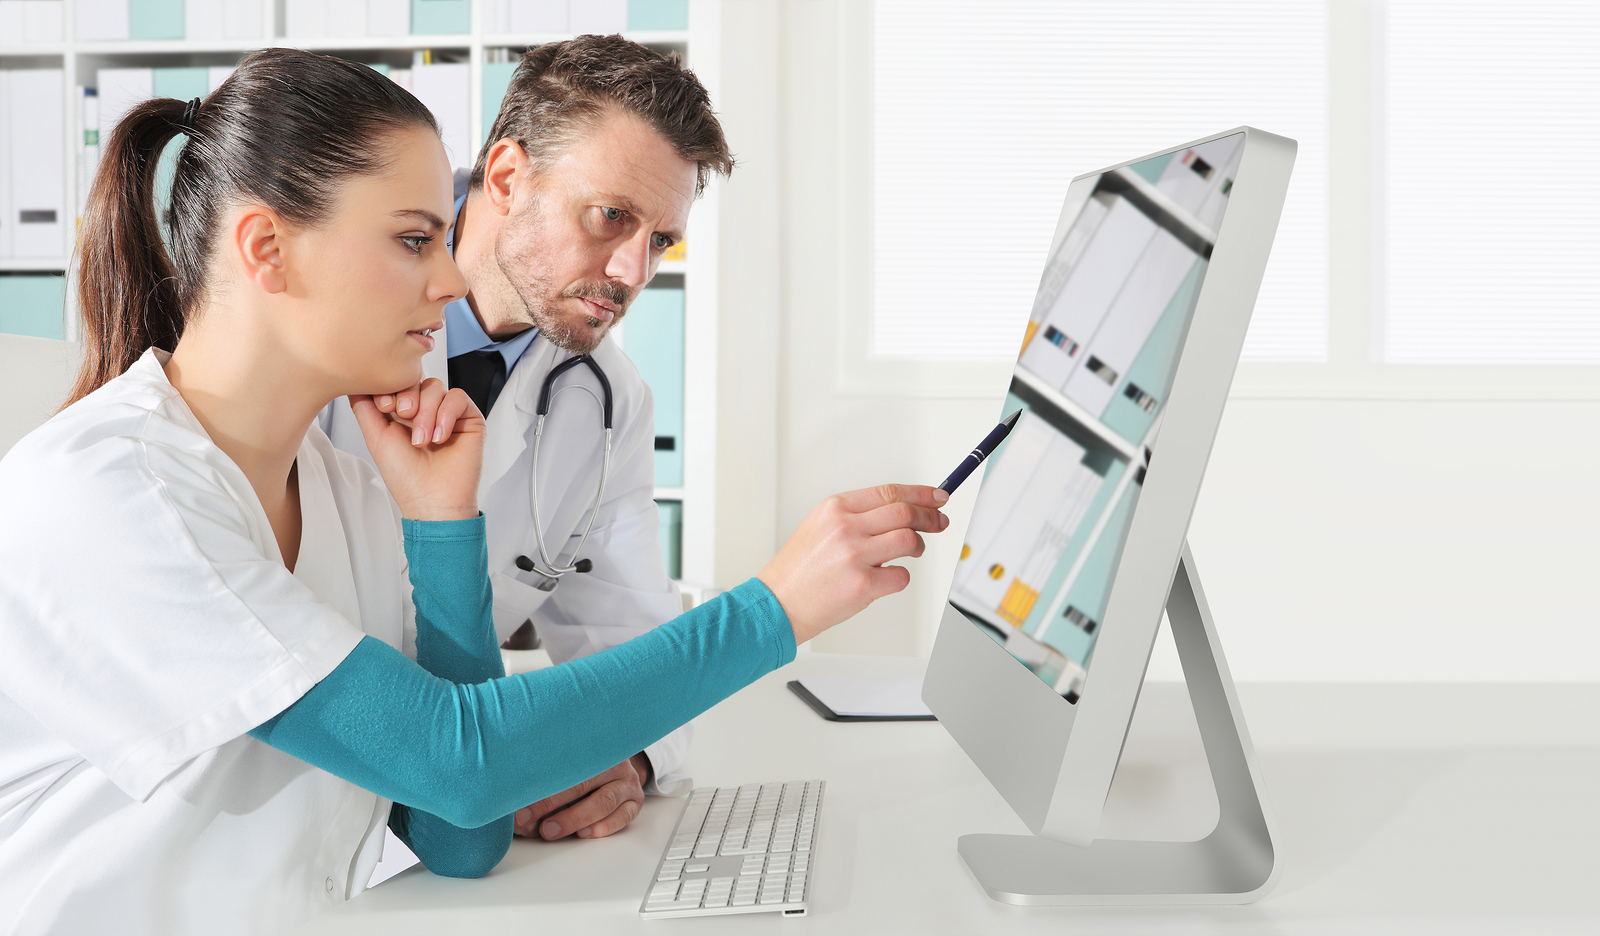 Doctor and nurse review patient information on remote population management technology platform